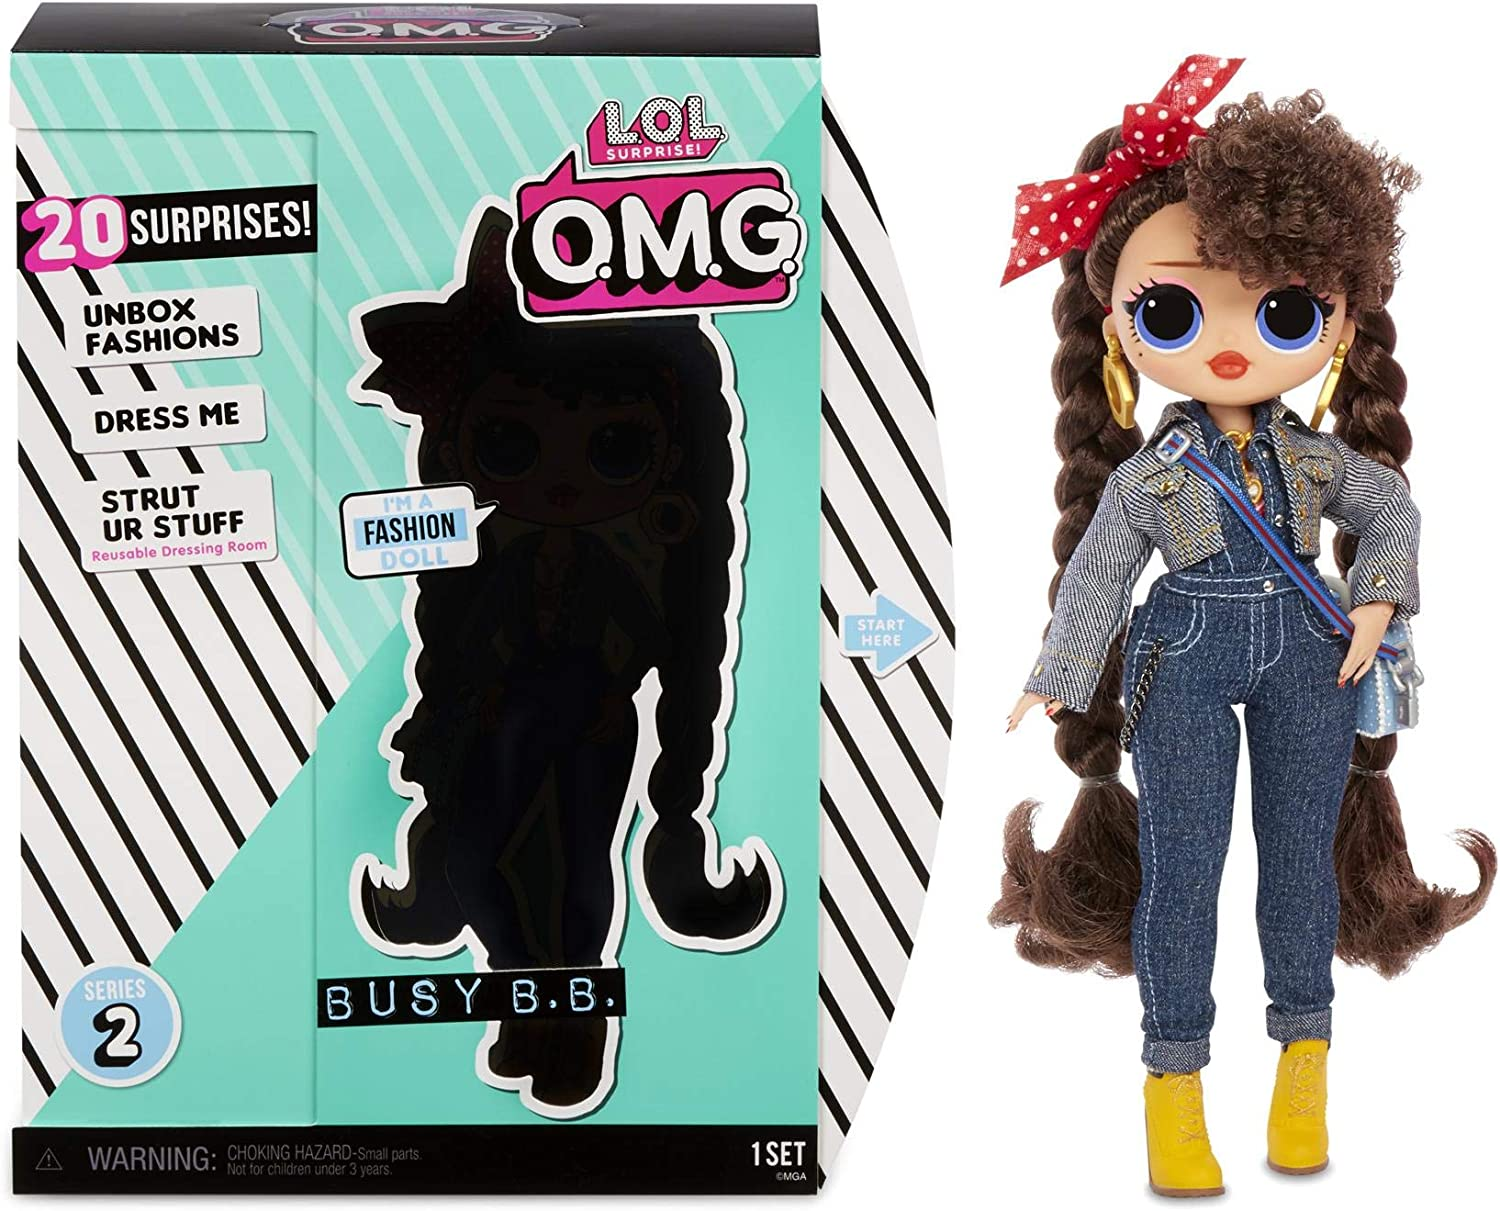 LOL Surprise O.M.G Candylicious Series 2 Fashion Doll With 20 Surprises